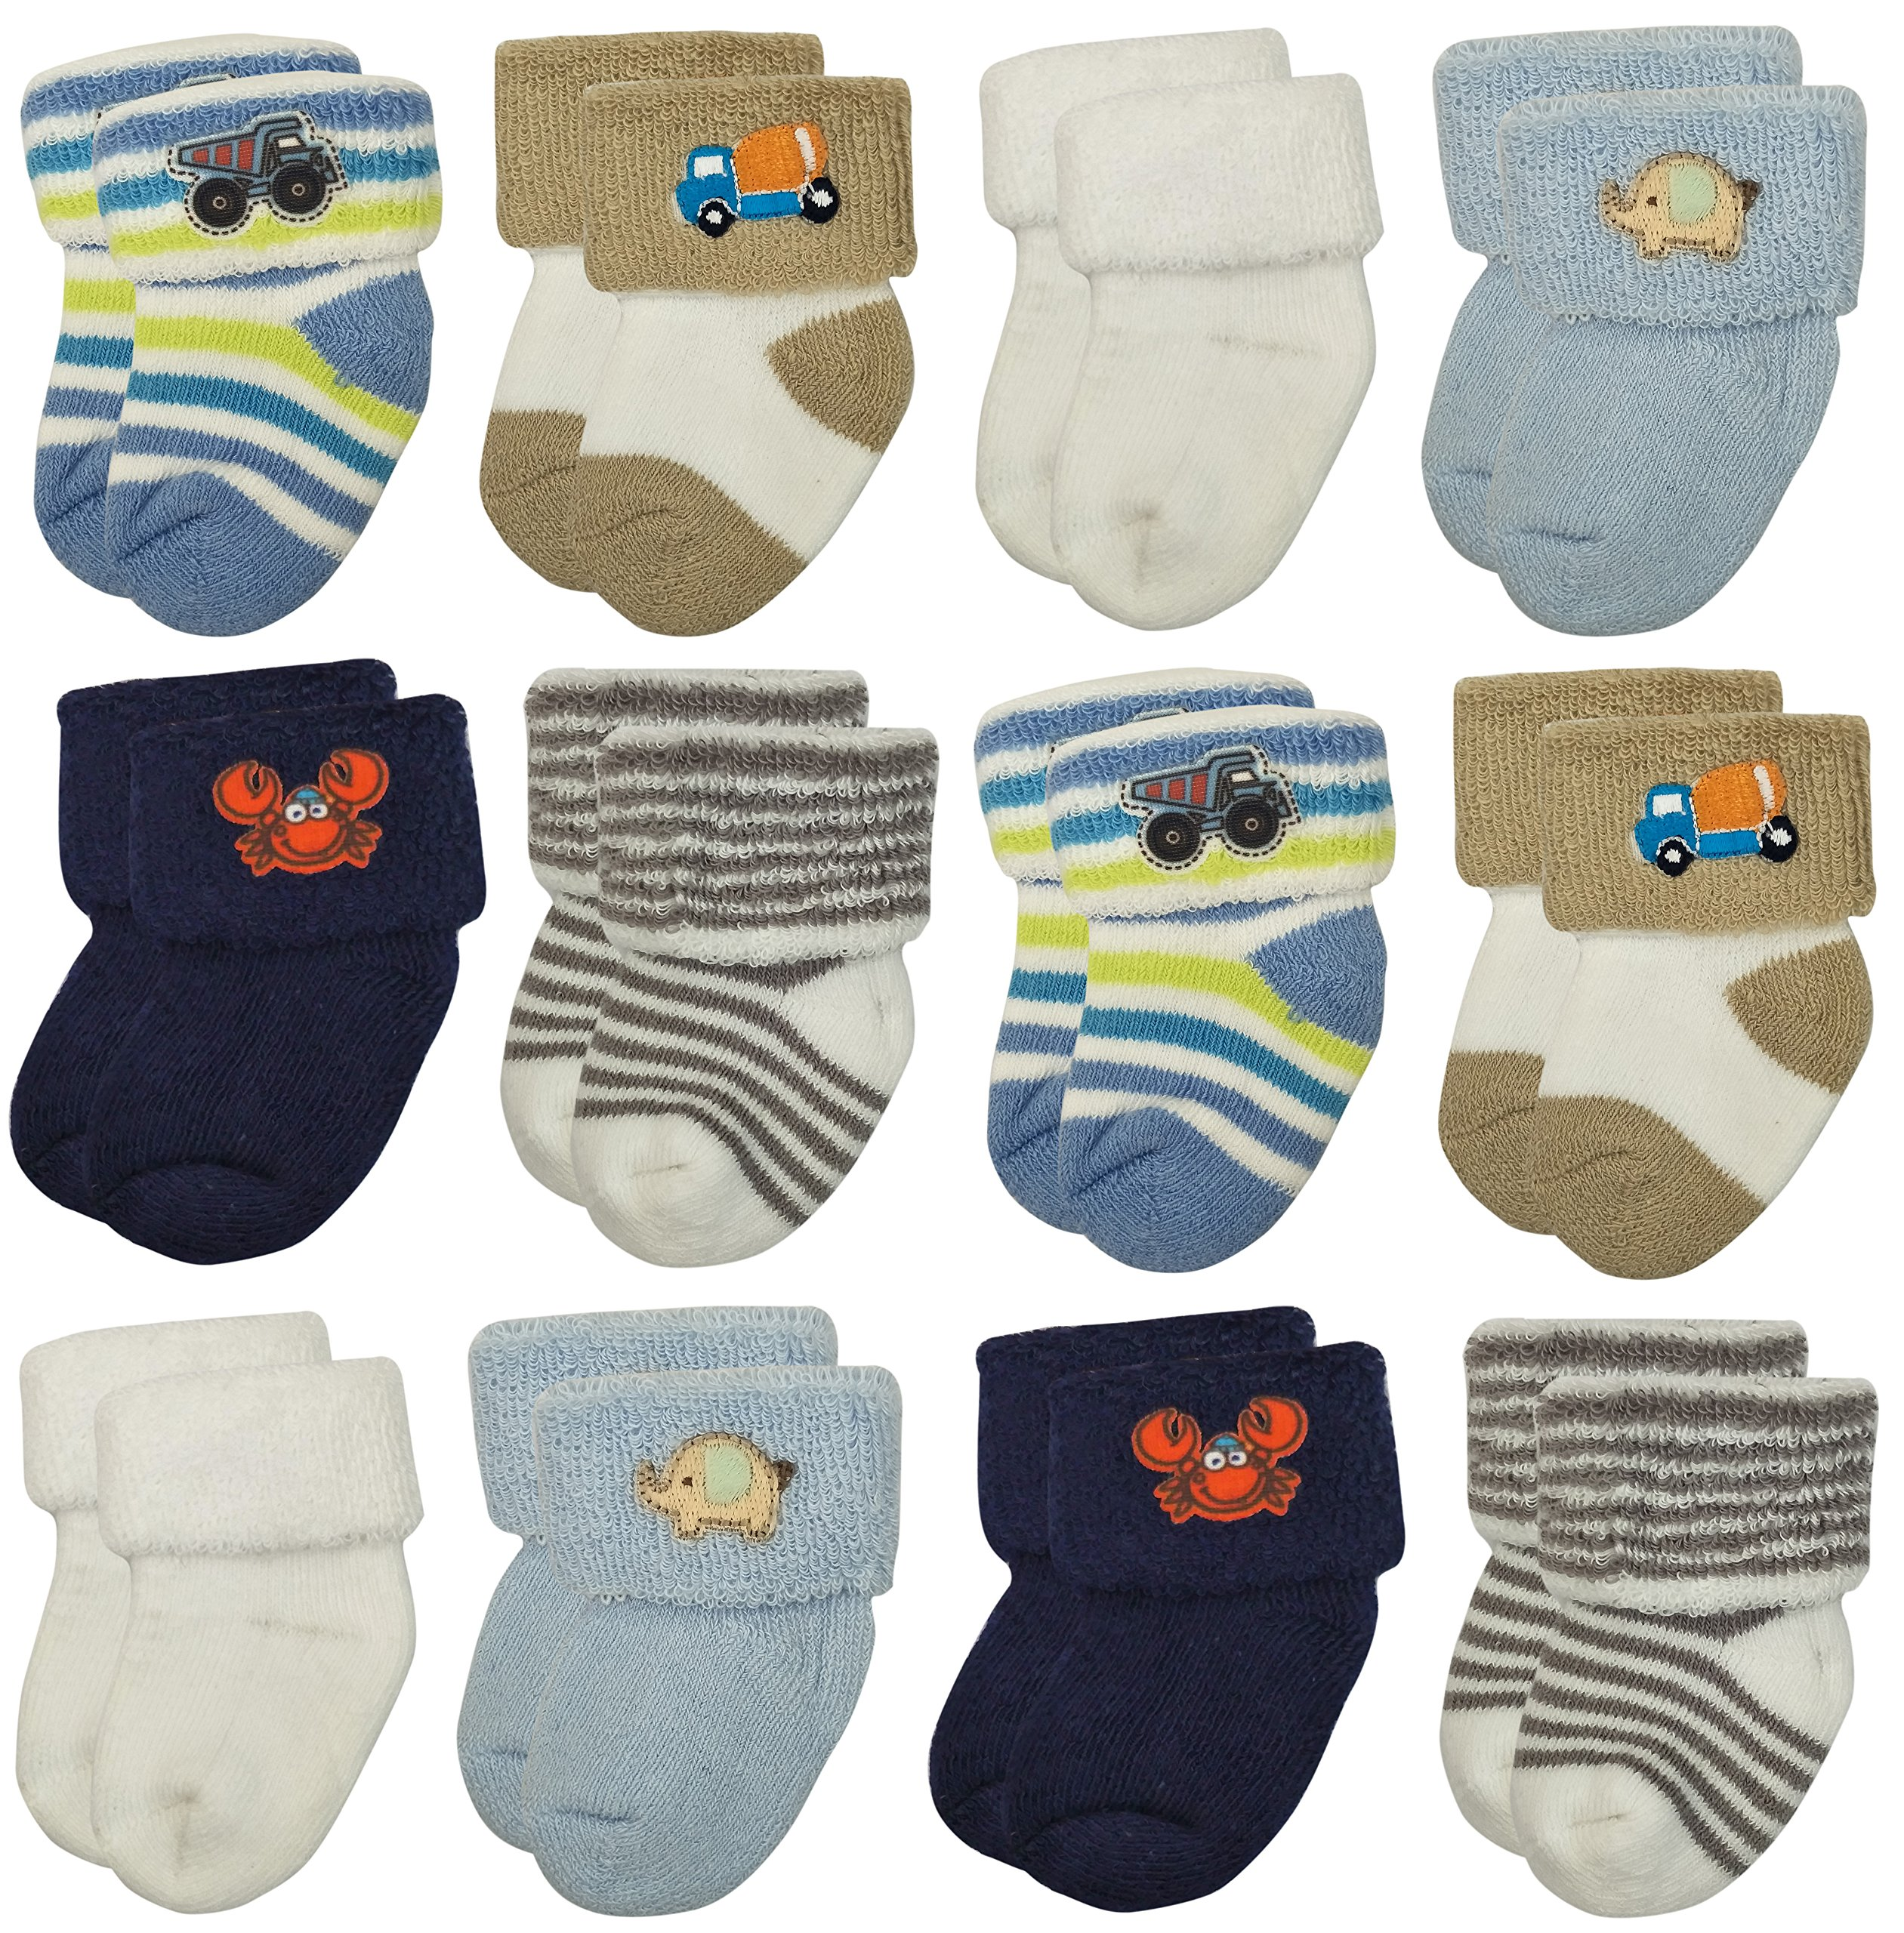 RATIVE Newborn Hospital Terry Turn Cuff Socks For Baby Boys and Girls (Newborn, 12-pairs/boy assorted)